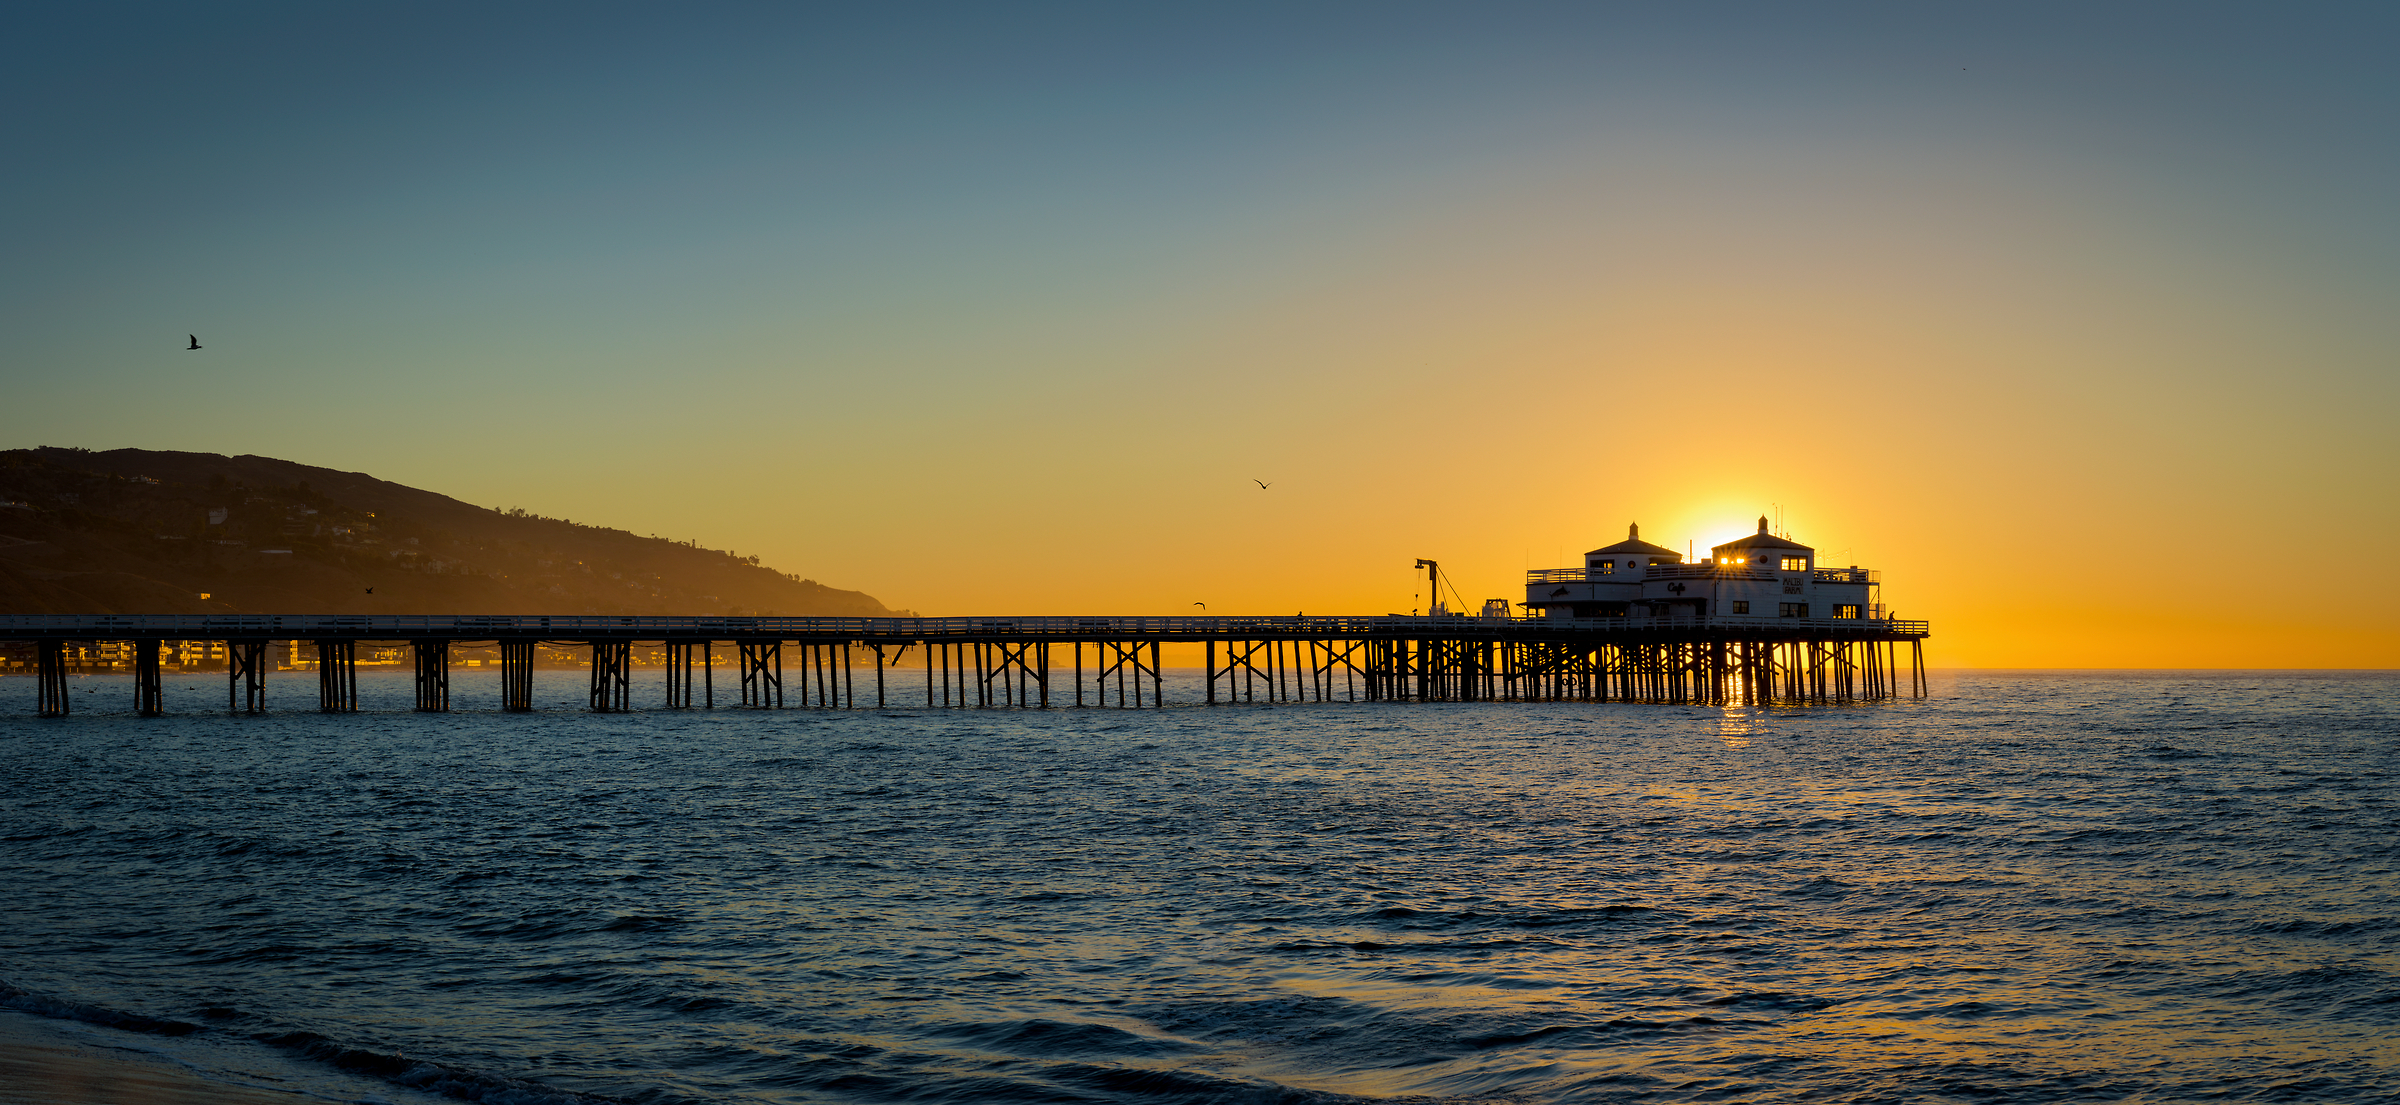 112 megapixels! A very high resolution, large-format VAST photo of the Malibu Pier at sunrise created by Jim Tarpo in Malibu, California